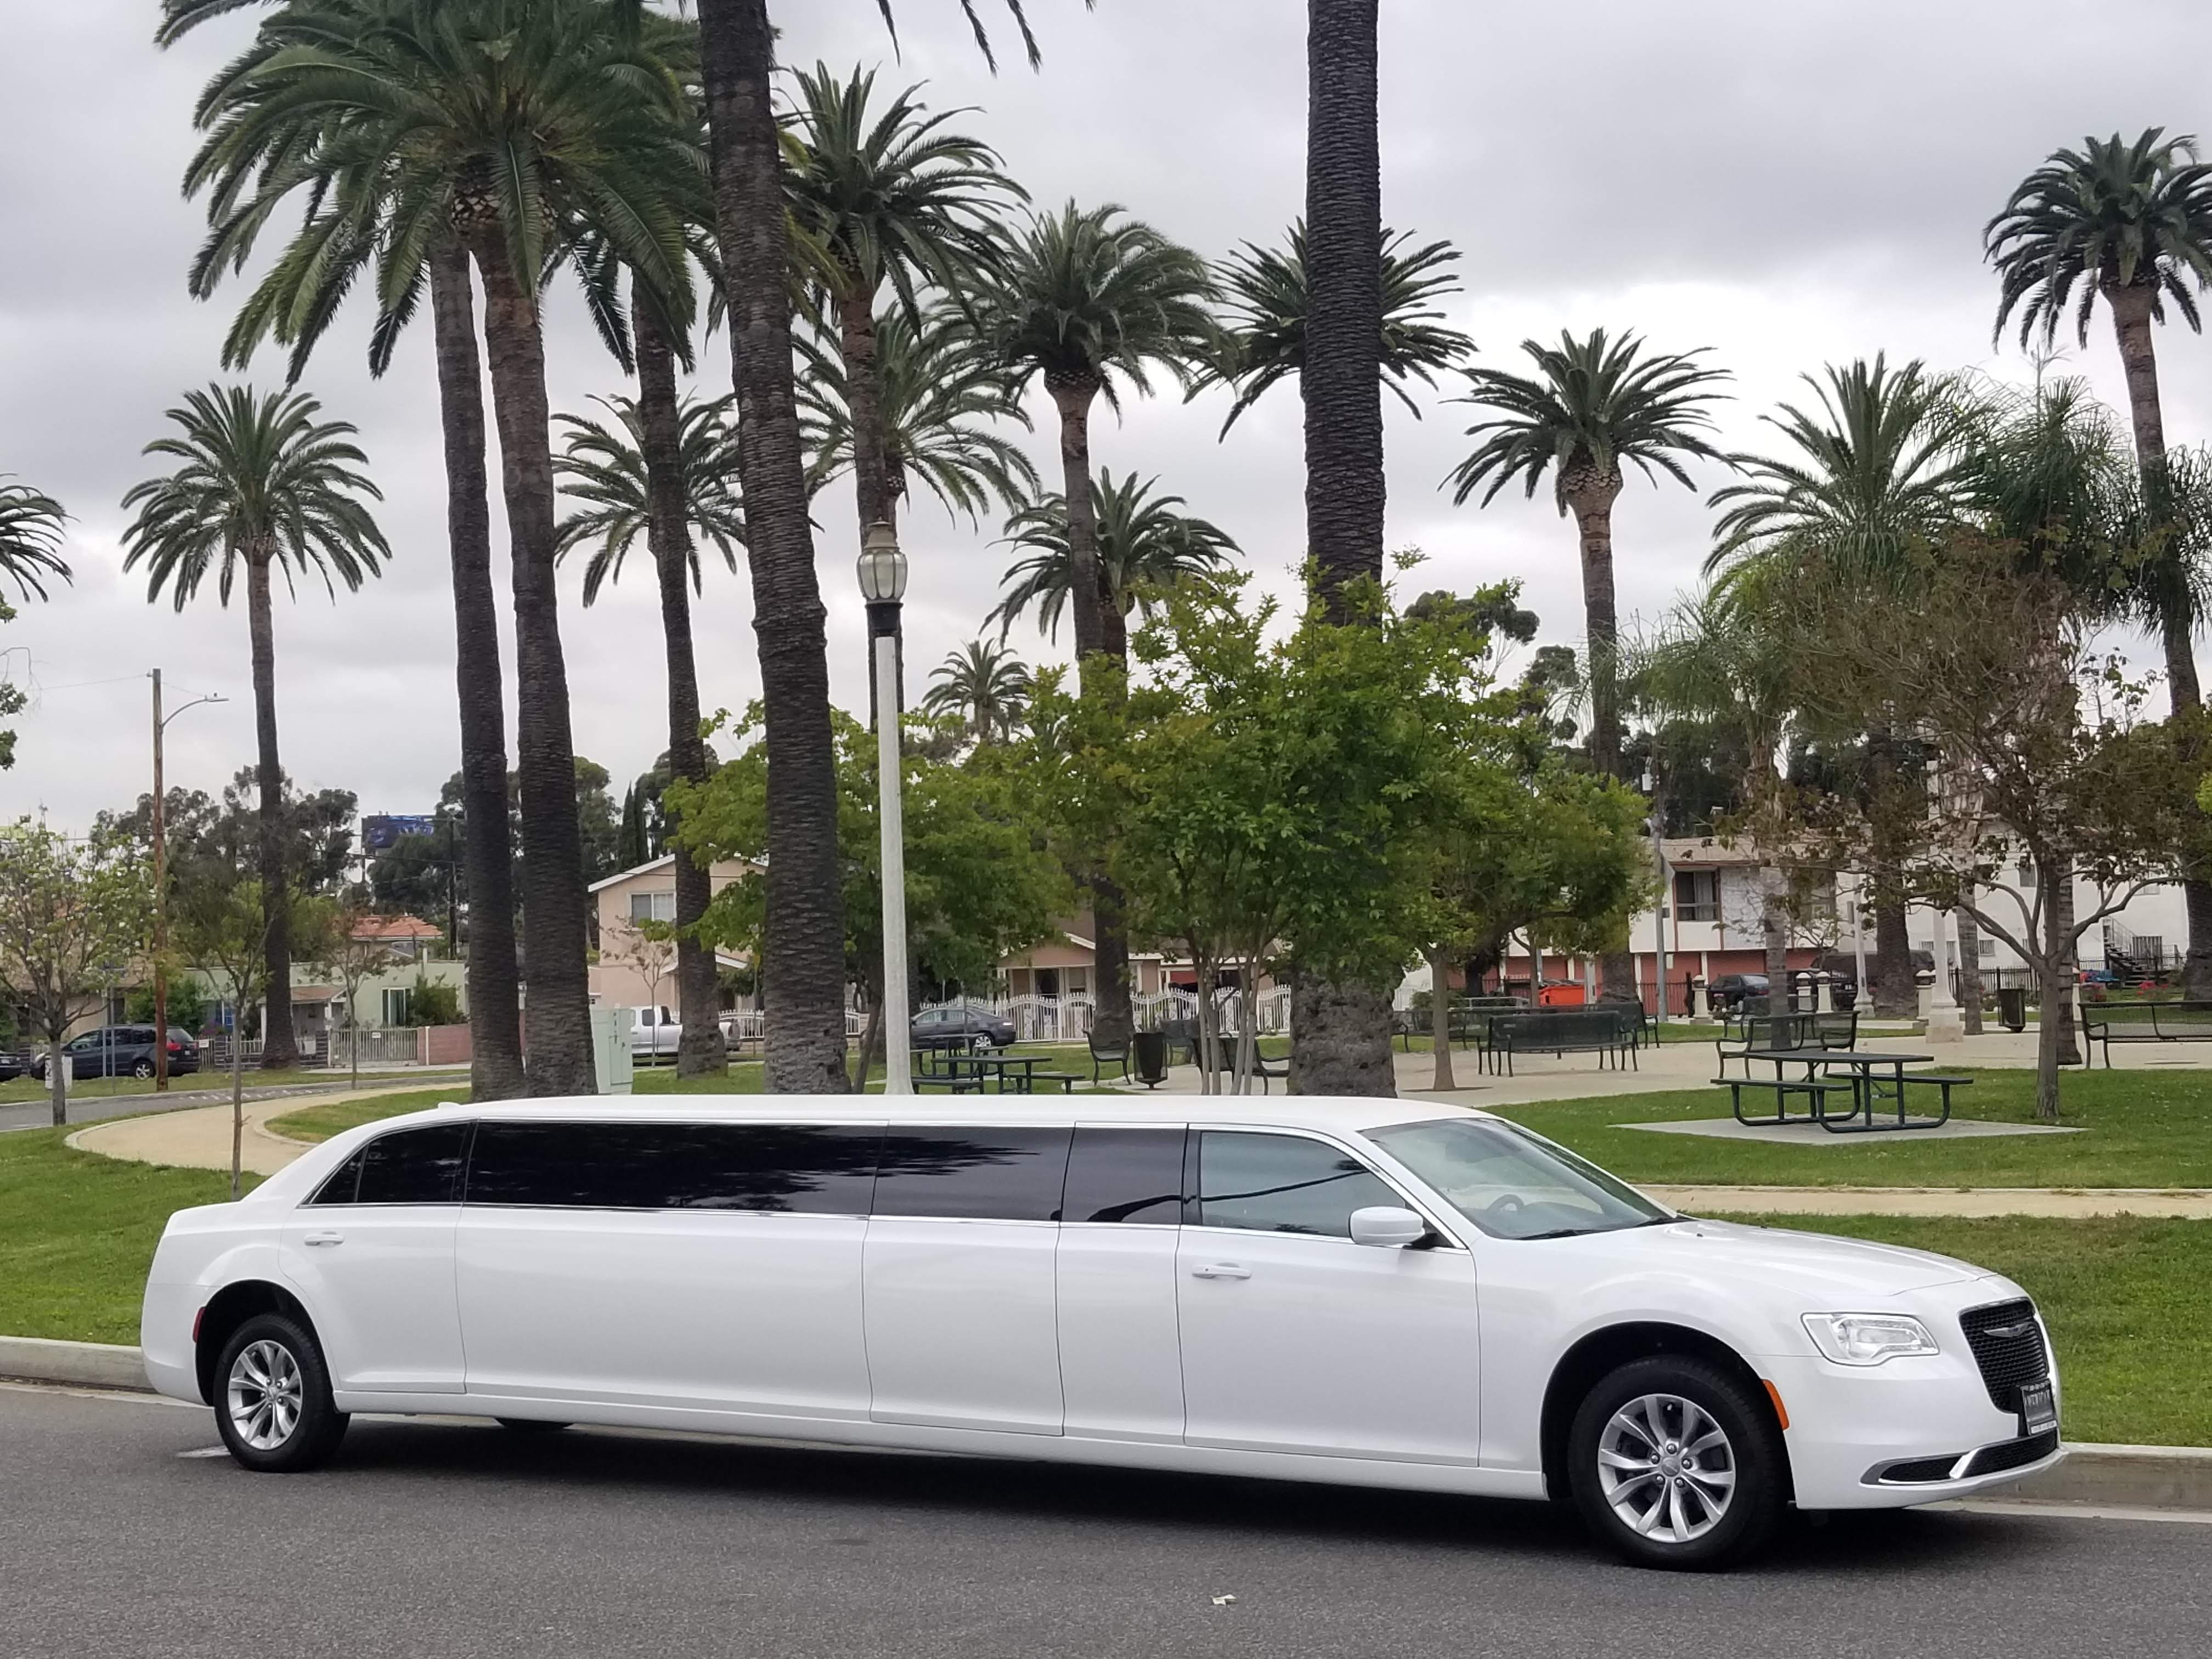 2018 Chrysler 300 White Fifth Door 140-inch Limo #1255